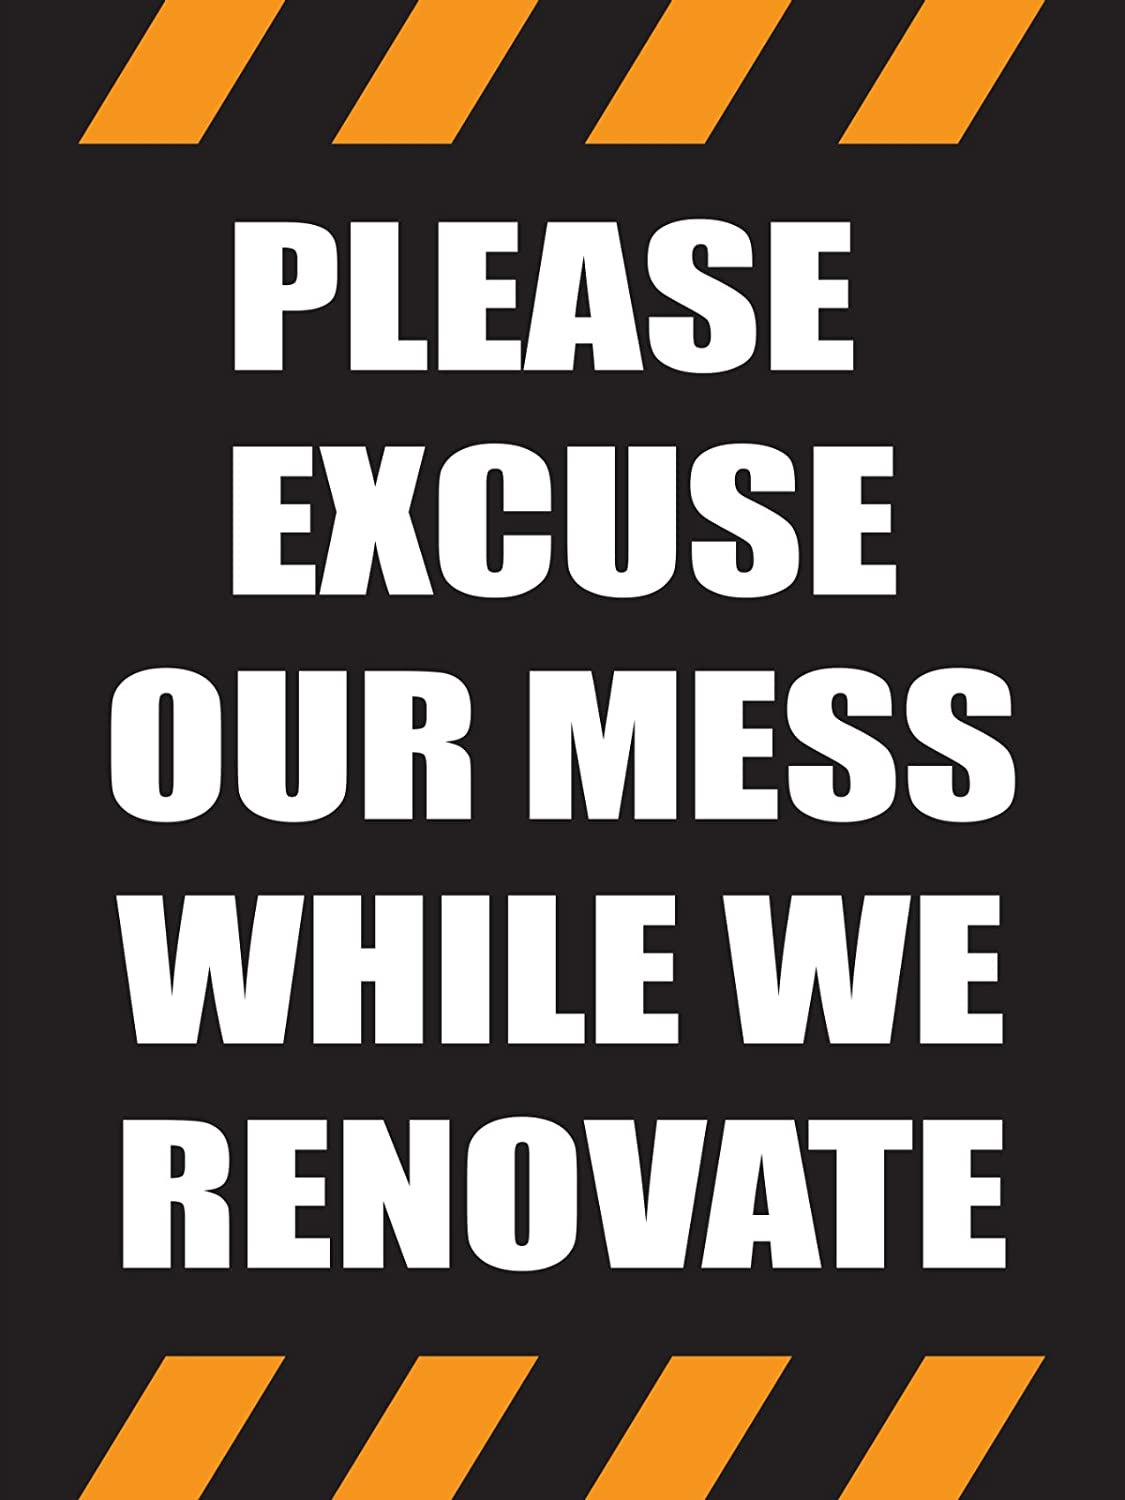 Please Excuse Our Mess While We Renovate 18x24 Store Business Retail Promotion Signs